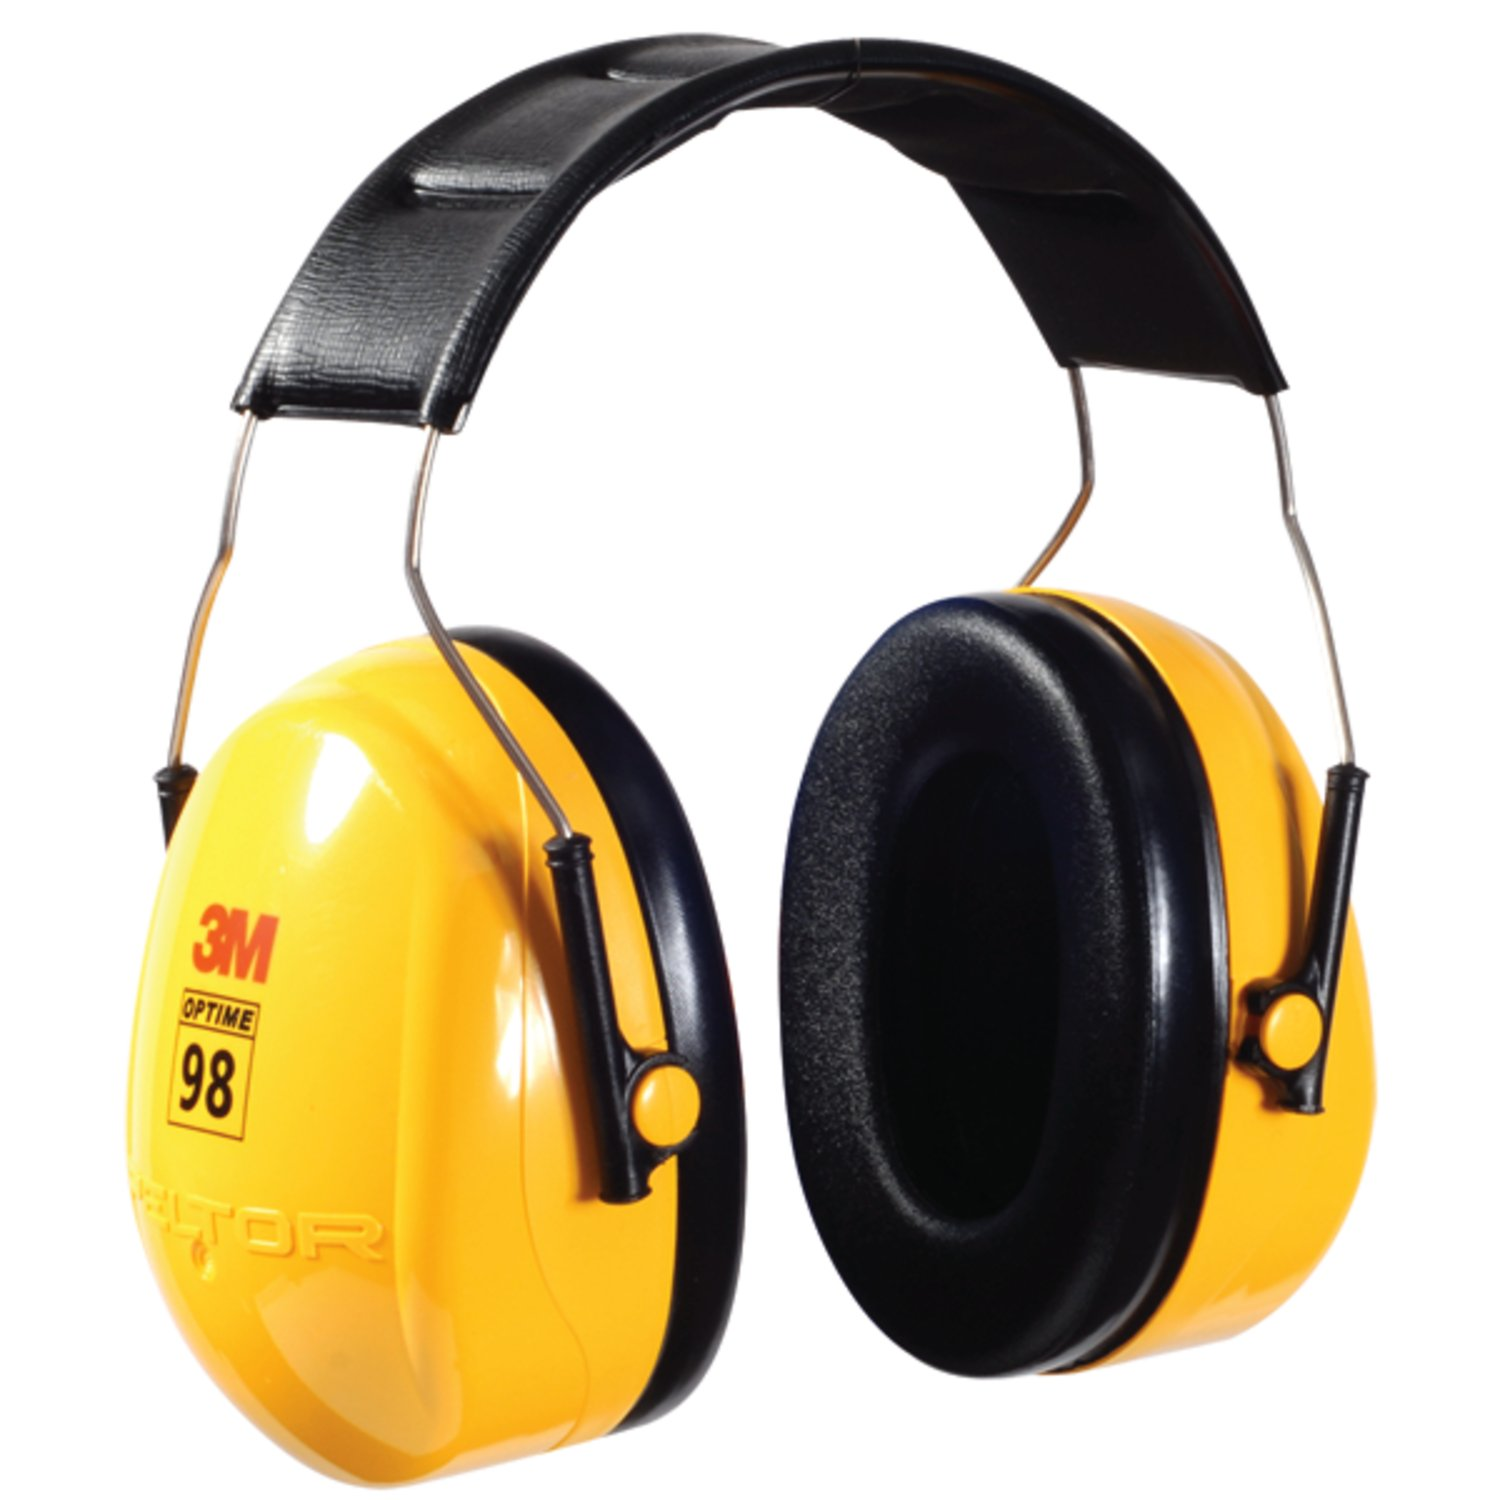 3m Peltor Optime 98 Over The Head Earmuffs 3m H9a